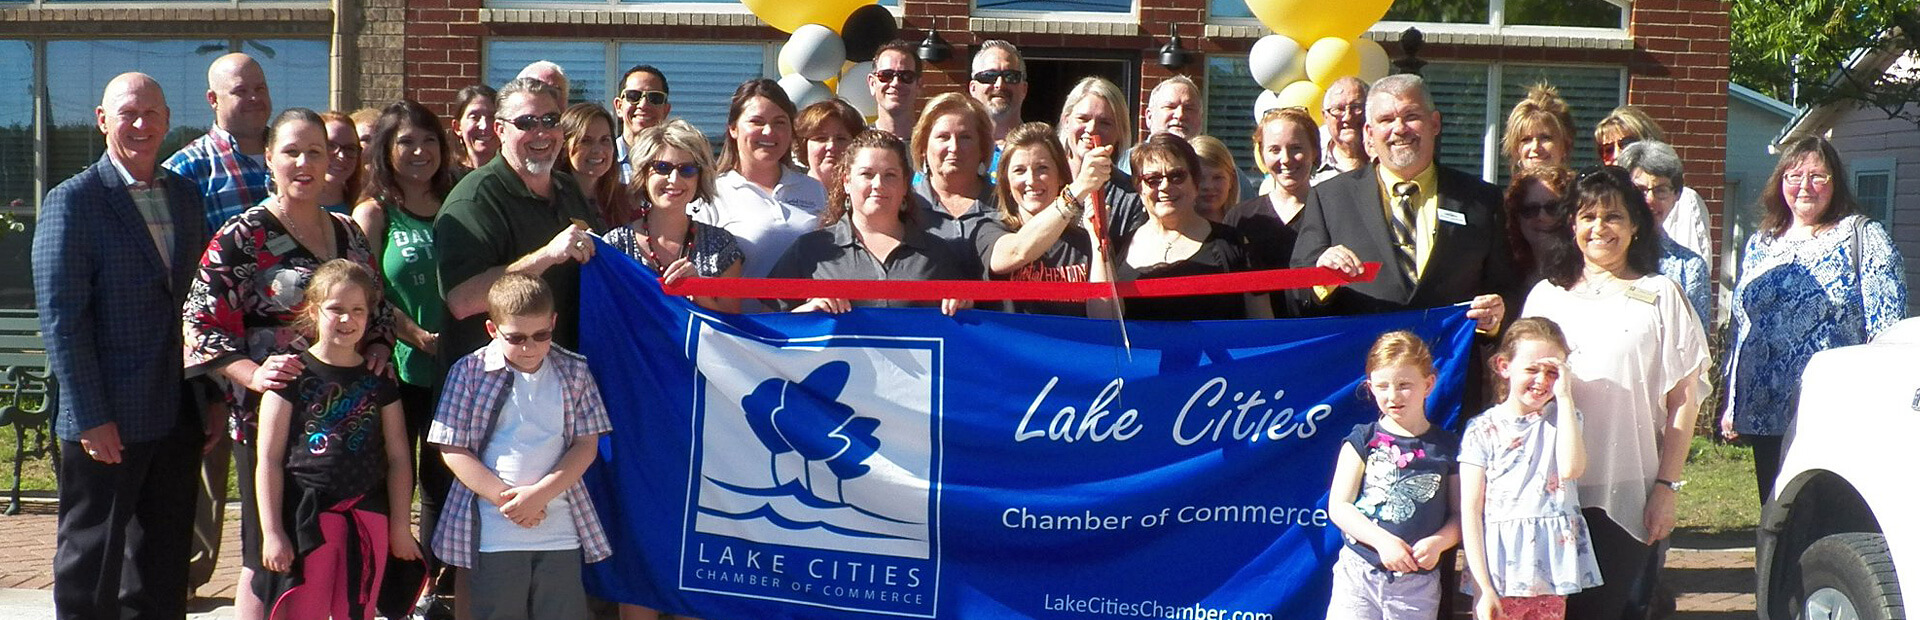 Lake Cities Chamber of Commerce | Ribbon Cutting